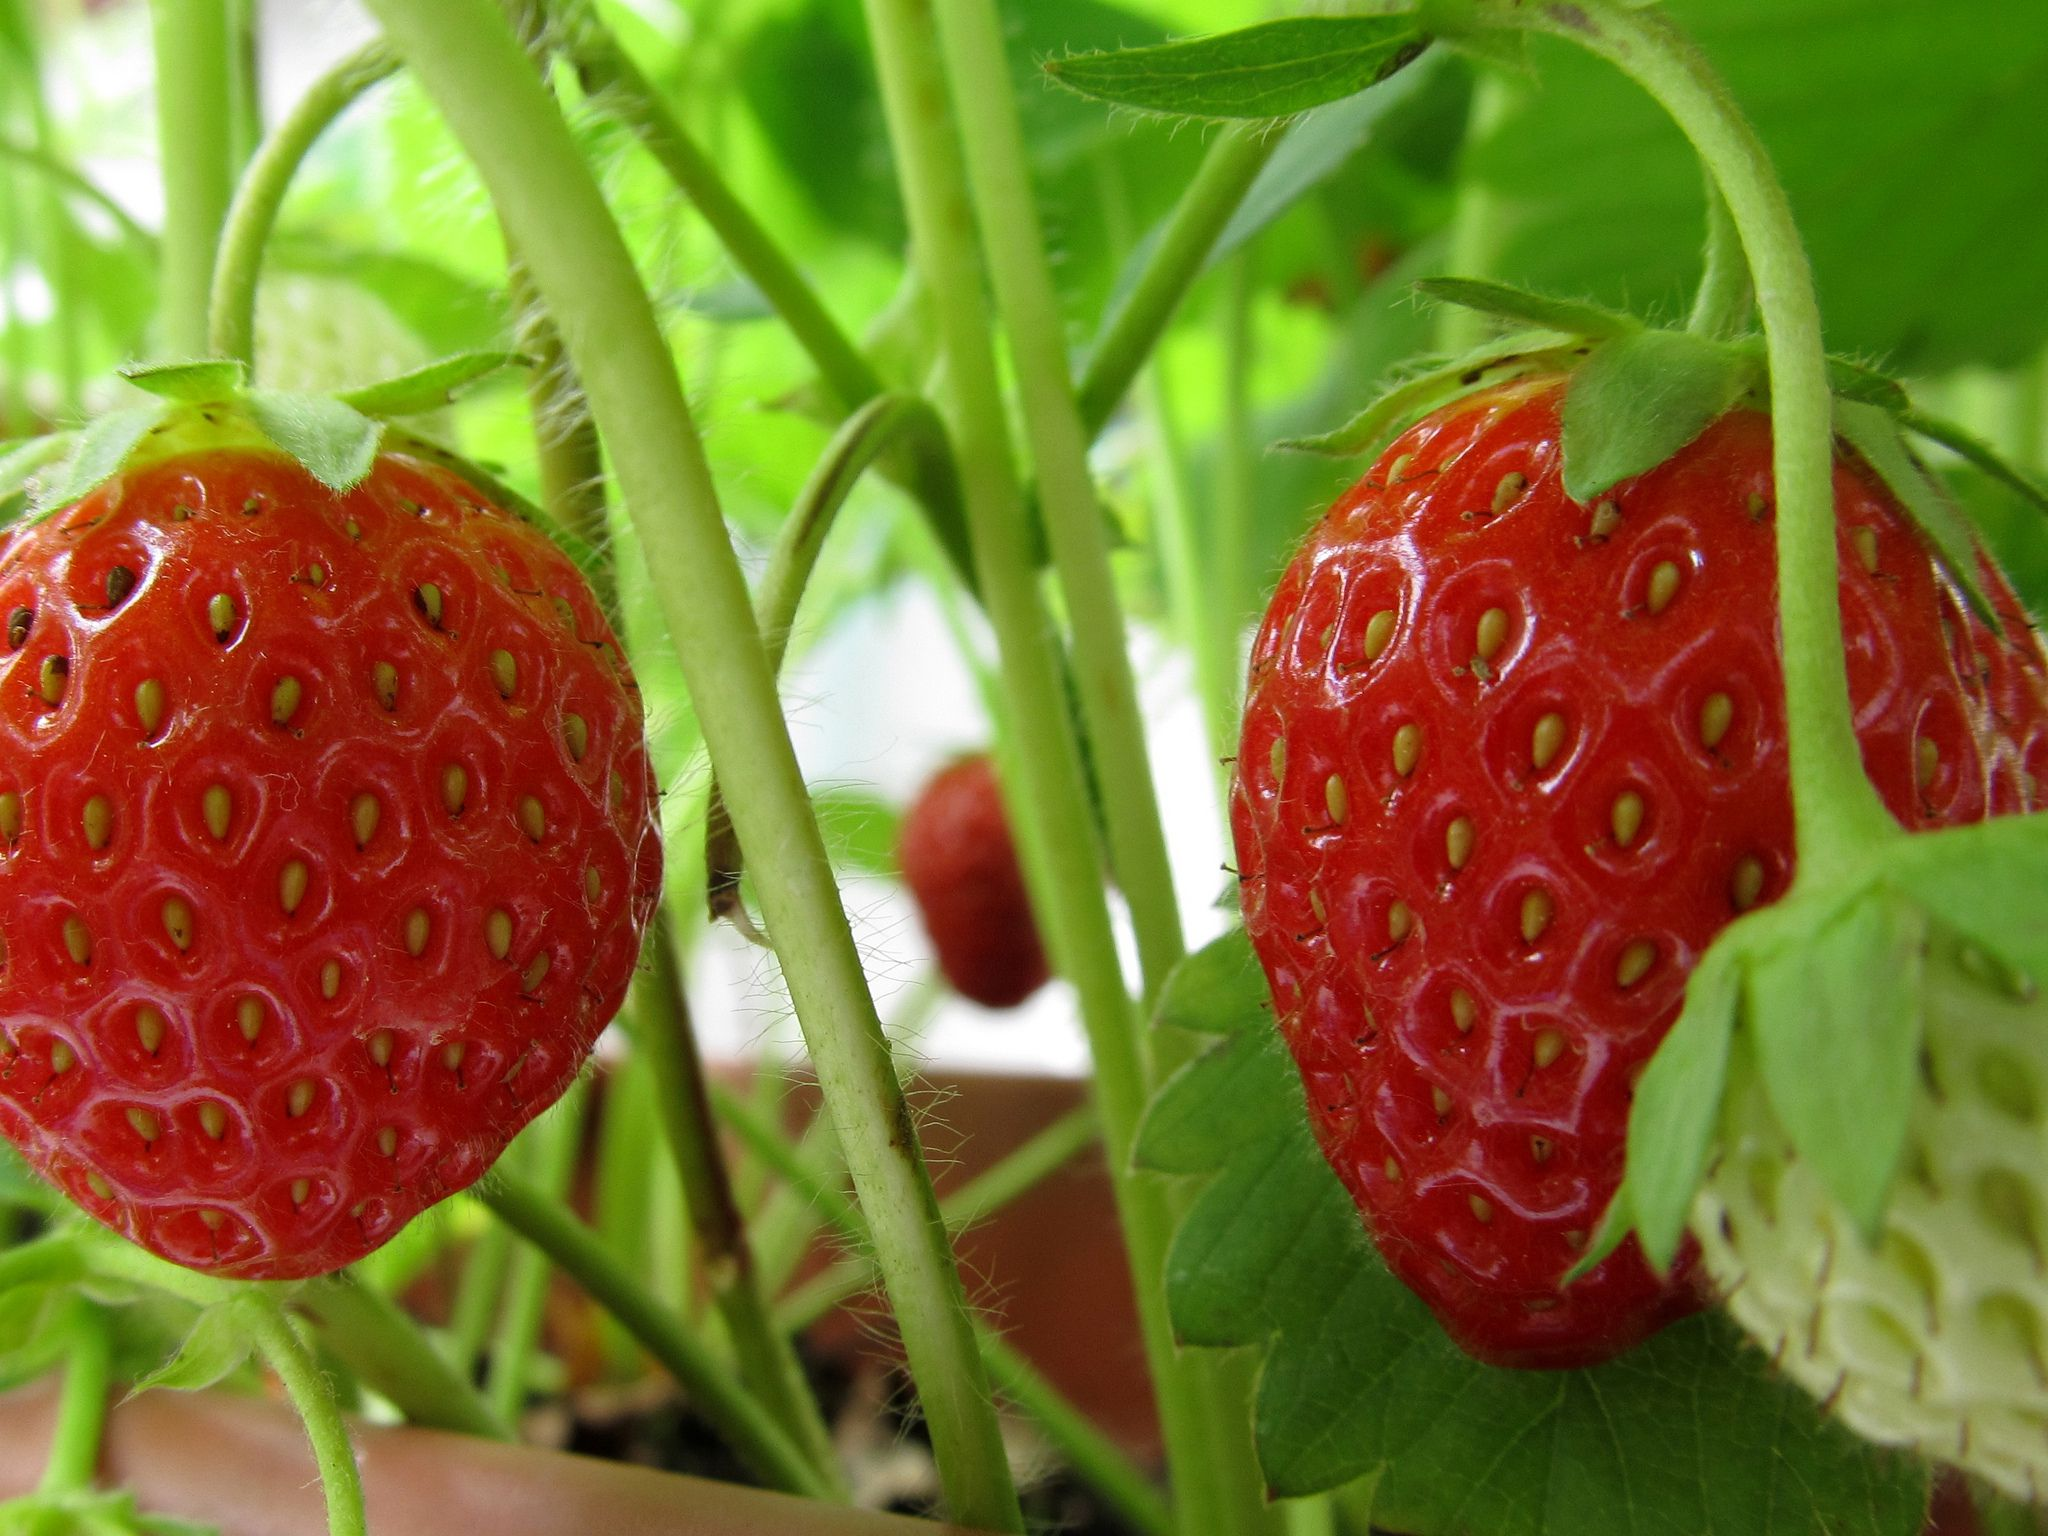 Best strawberries to grow in texas - Growing Strawberries From Seeds The Easy Way